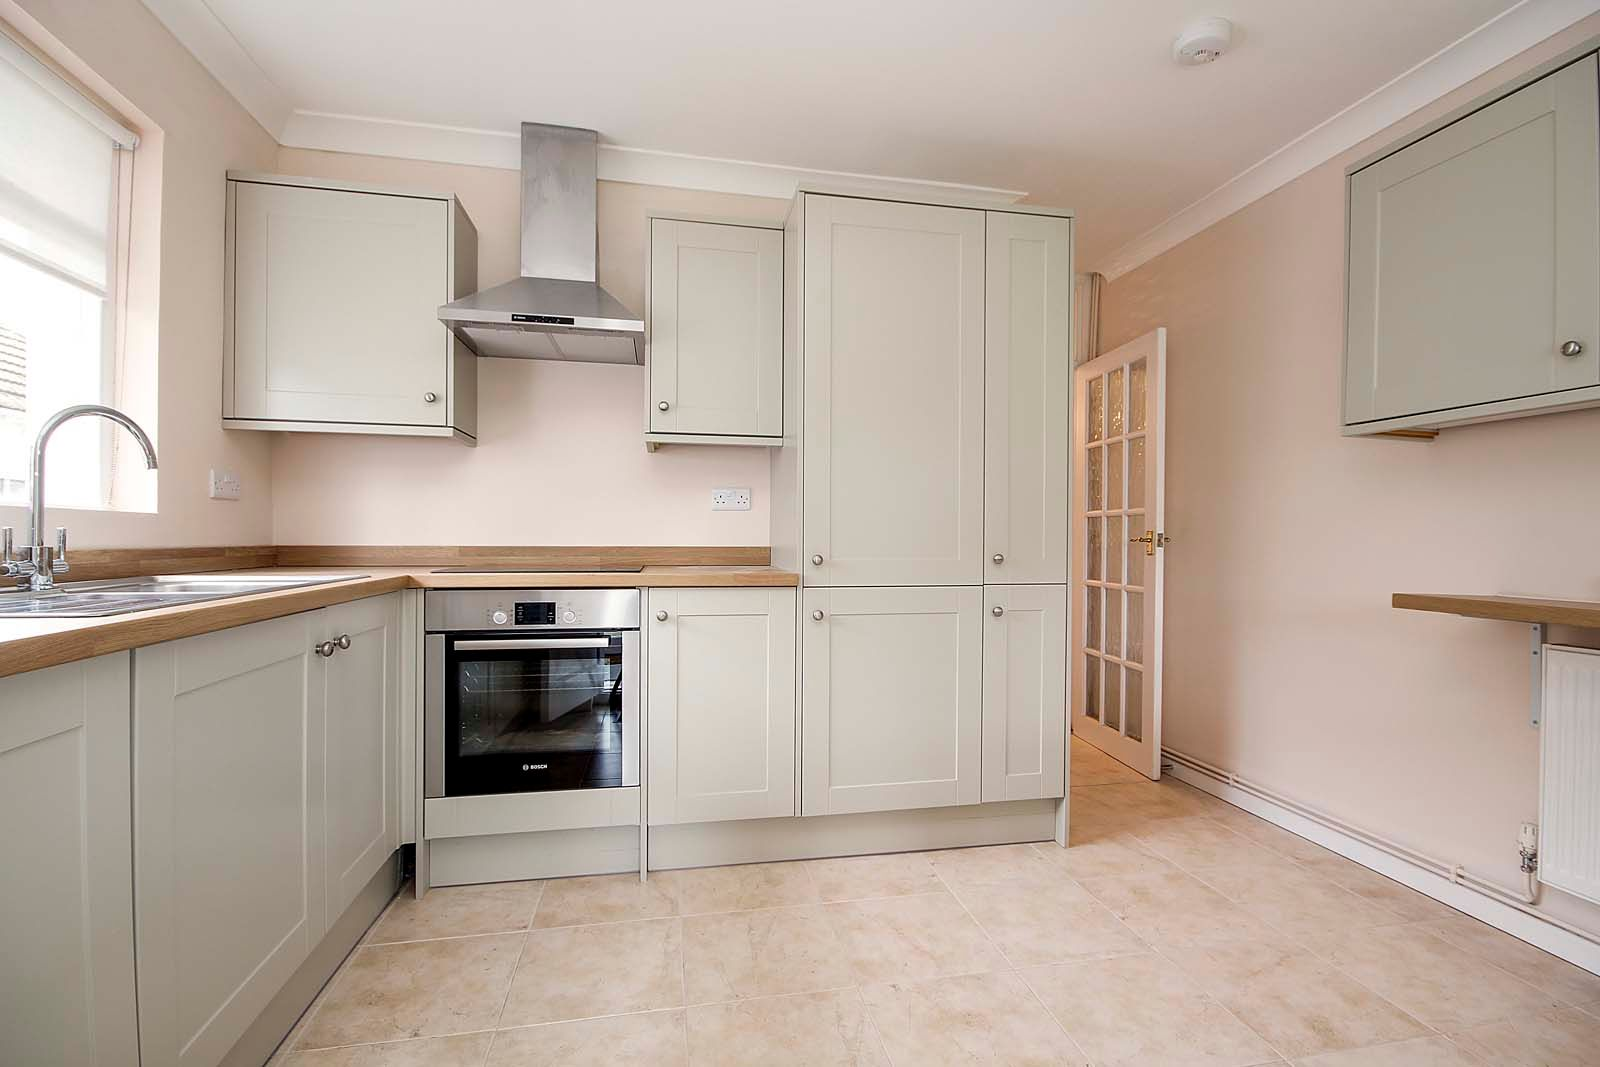 3 bed bungalow for sale in Hillview Crescent COMP MAY 2019 2